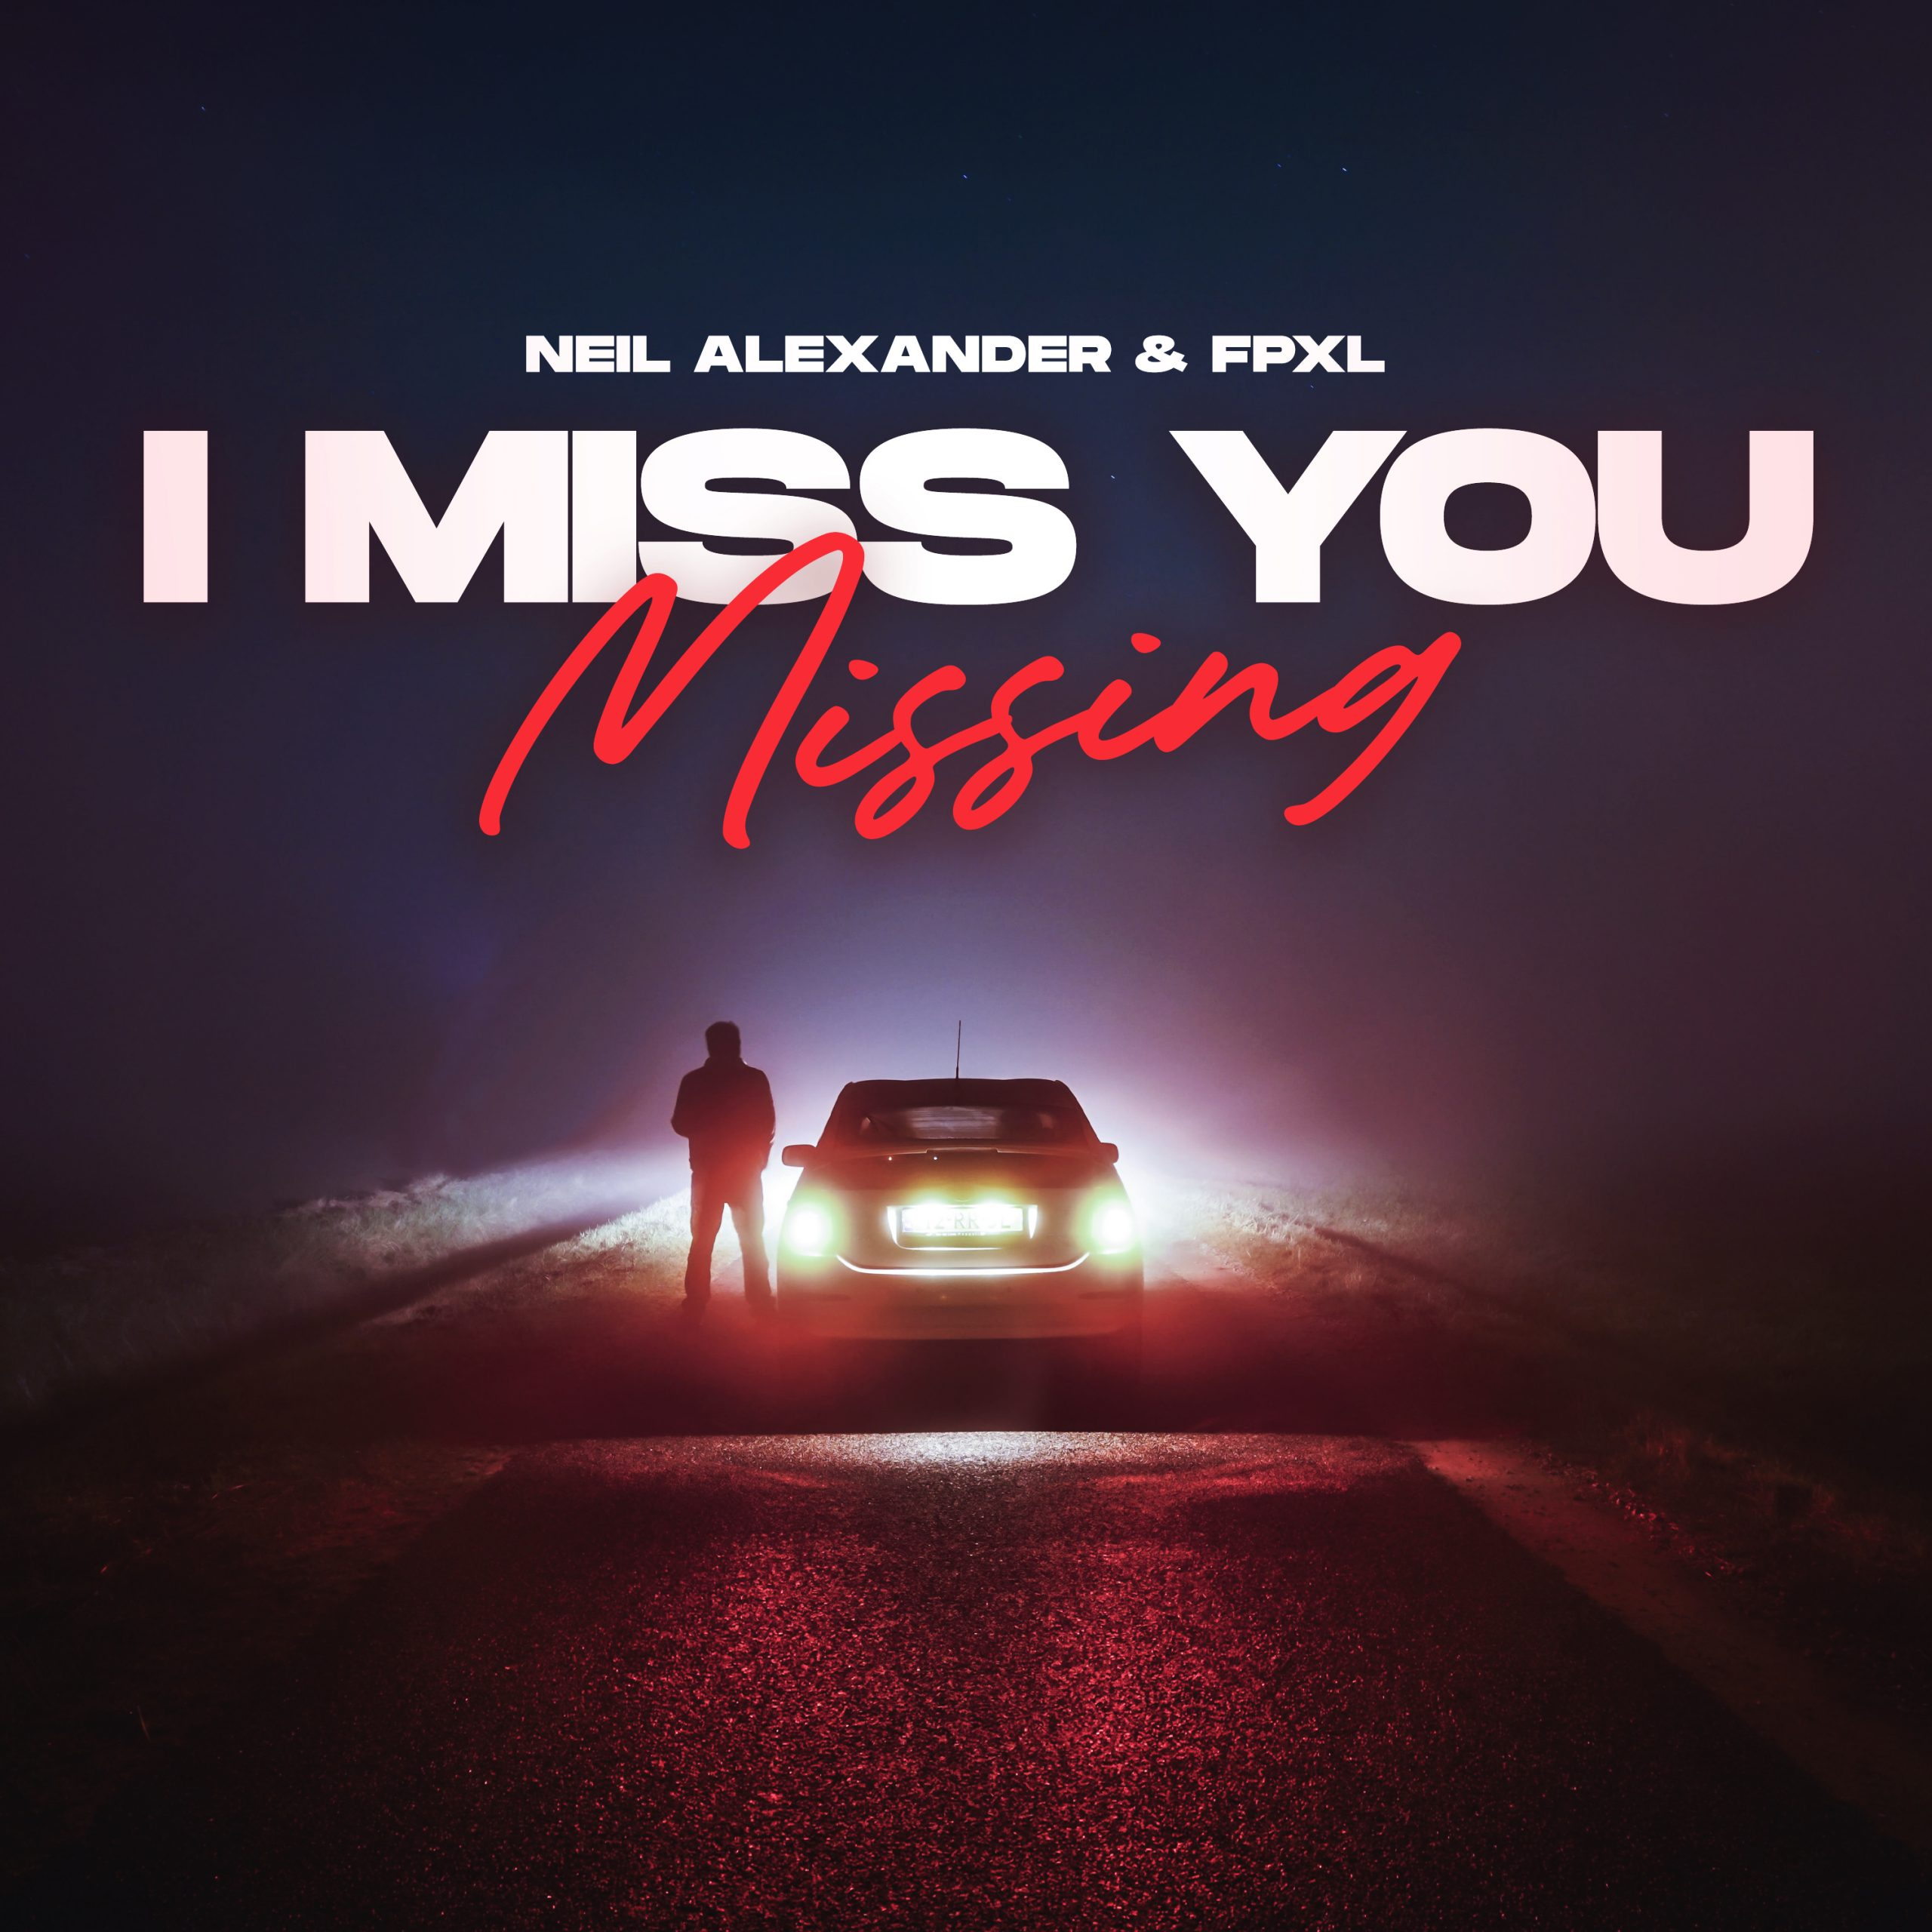 Neil Alexander & FPXL – I Miss You (Missing)